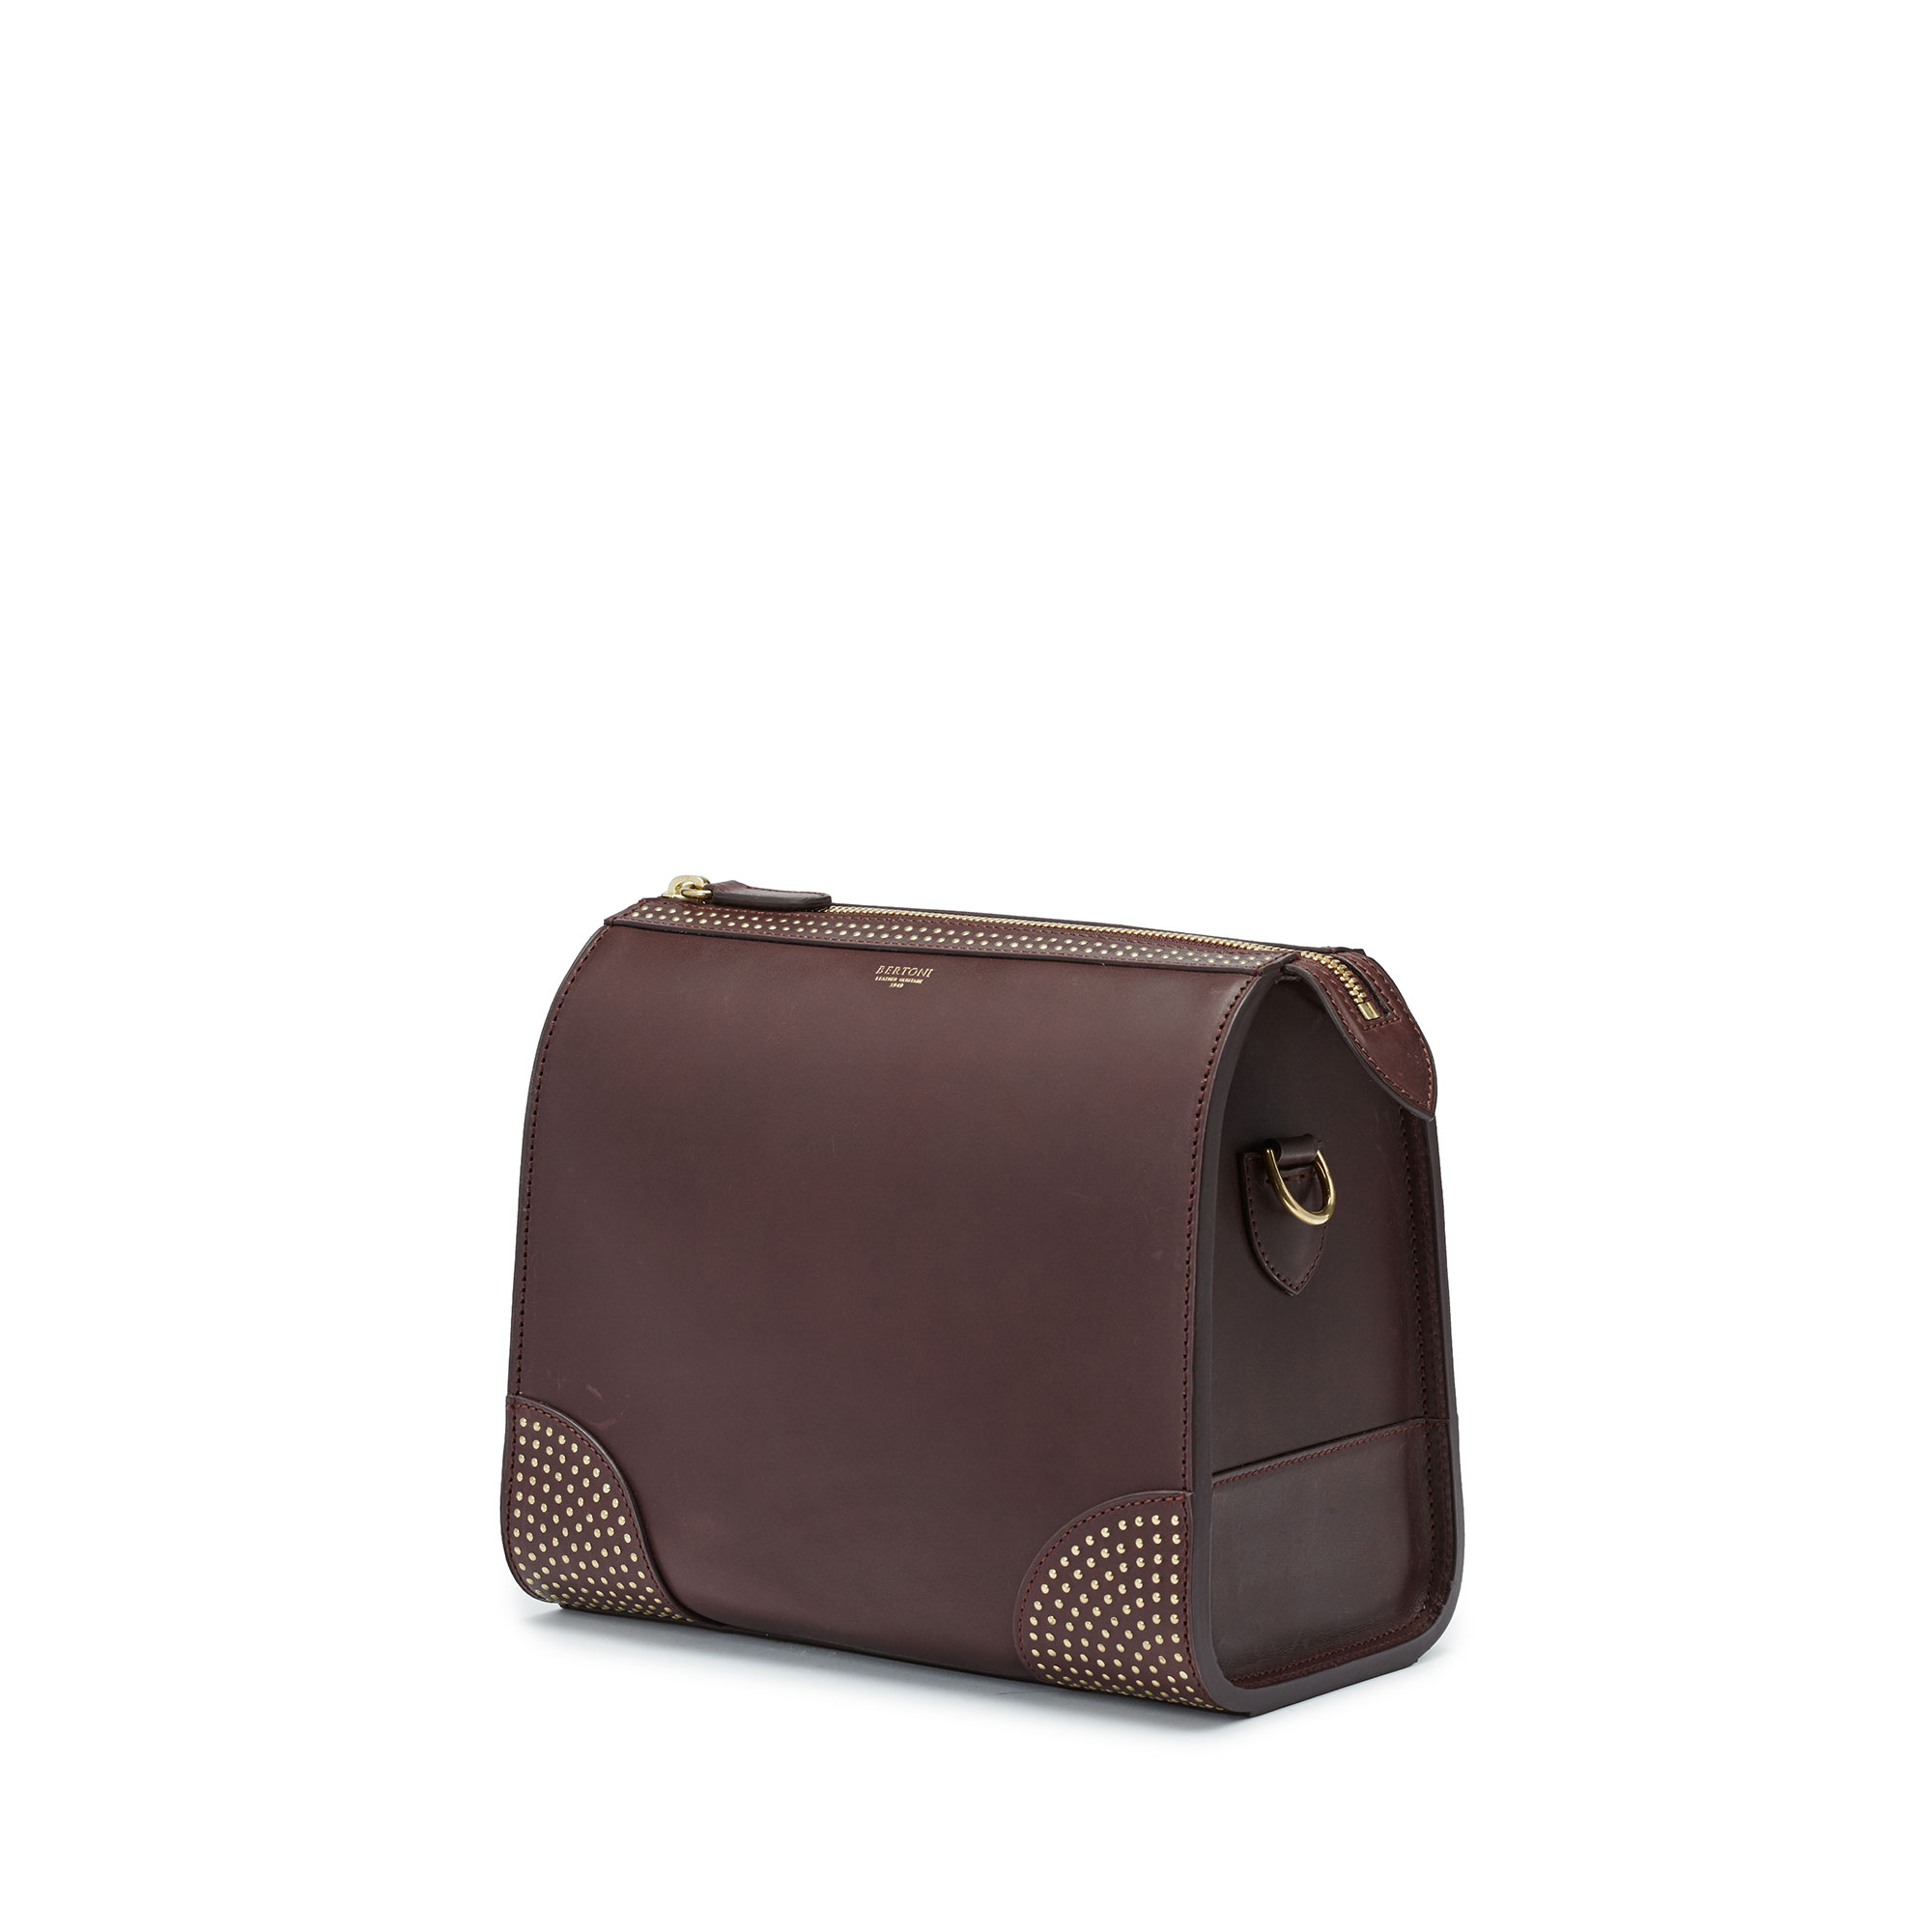 Darcy-Crossbody-bordeaux-french-calf-bag-Bertoni-1949_01